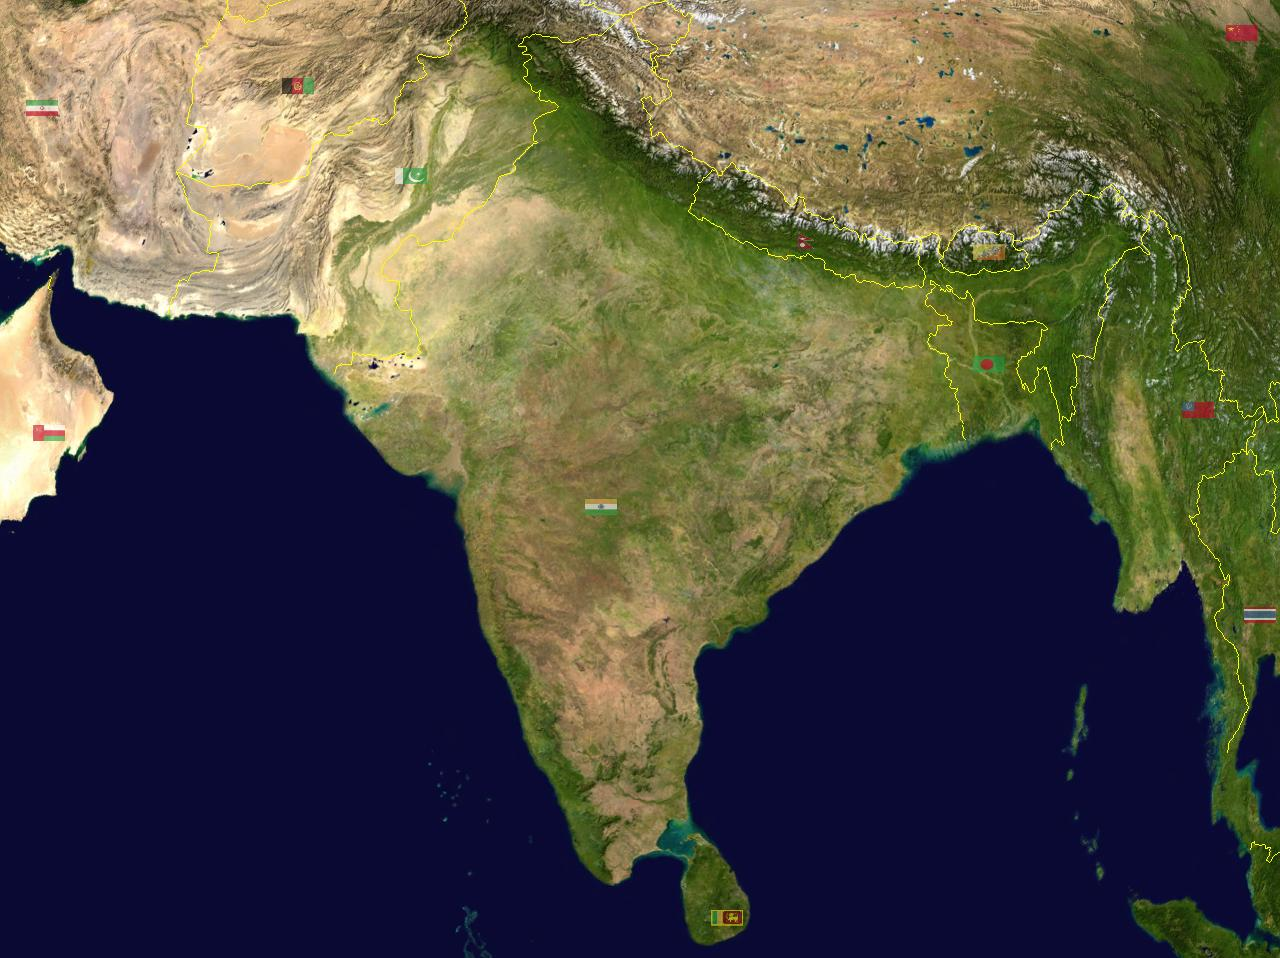 Indian Non-Alignment in the 21st Century